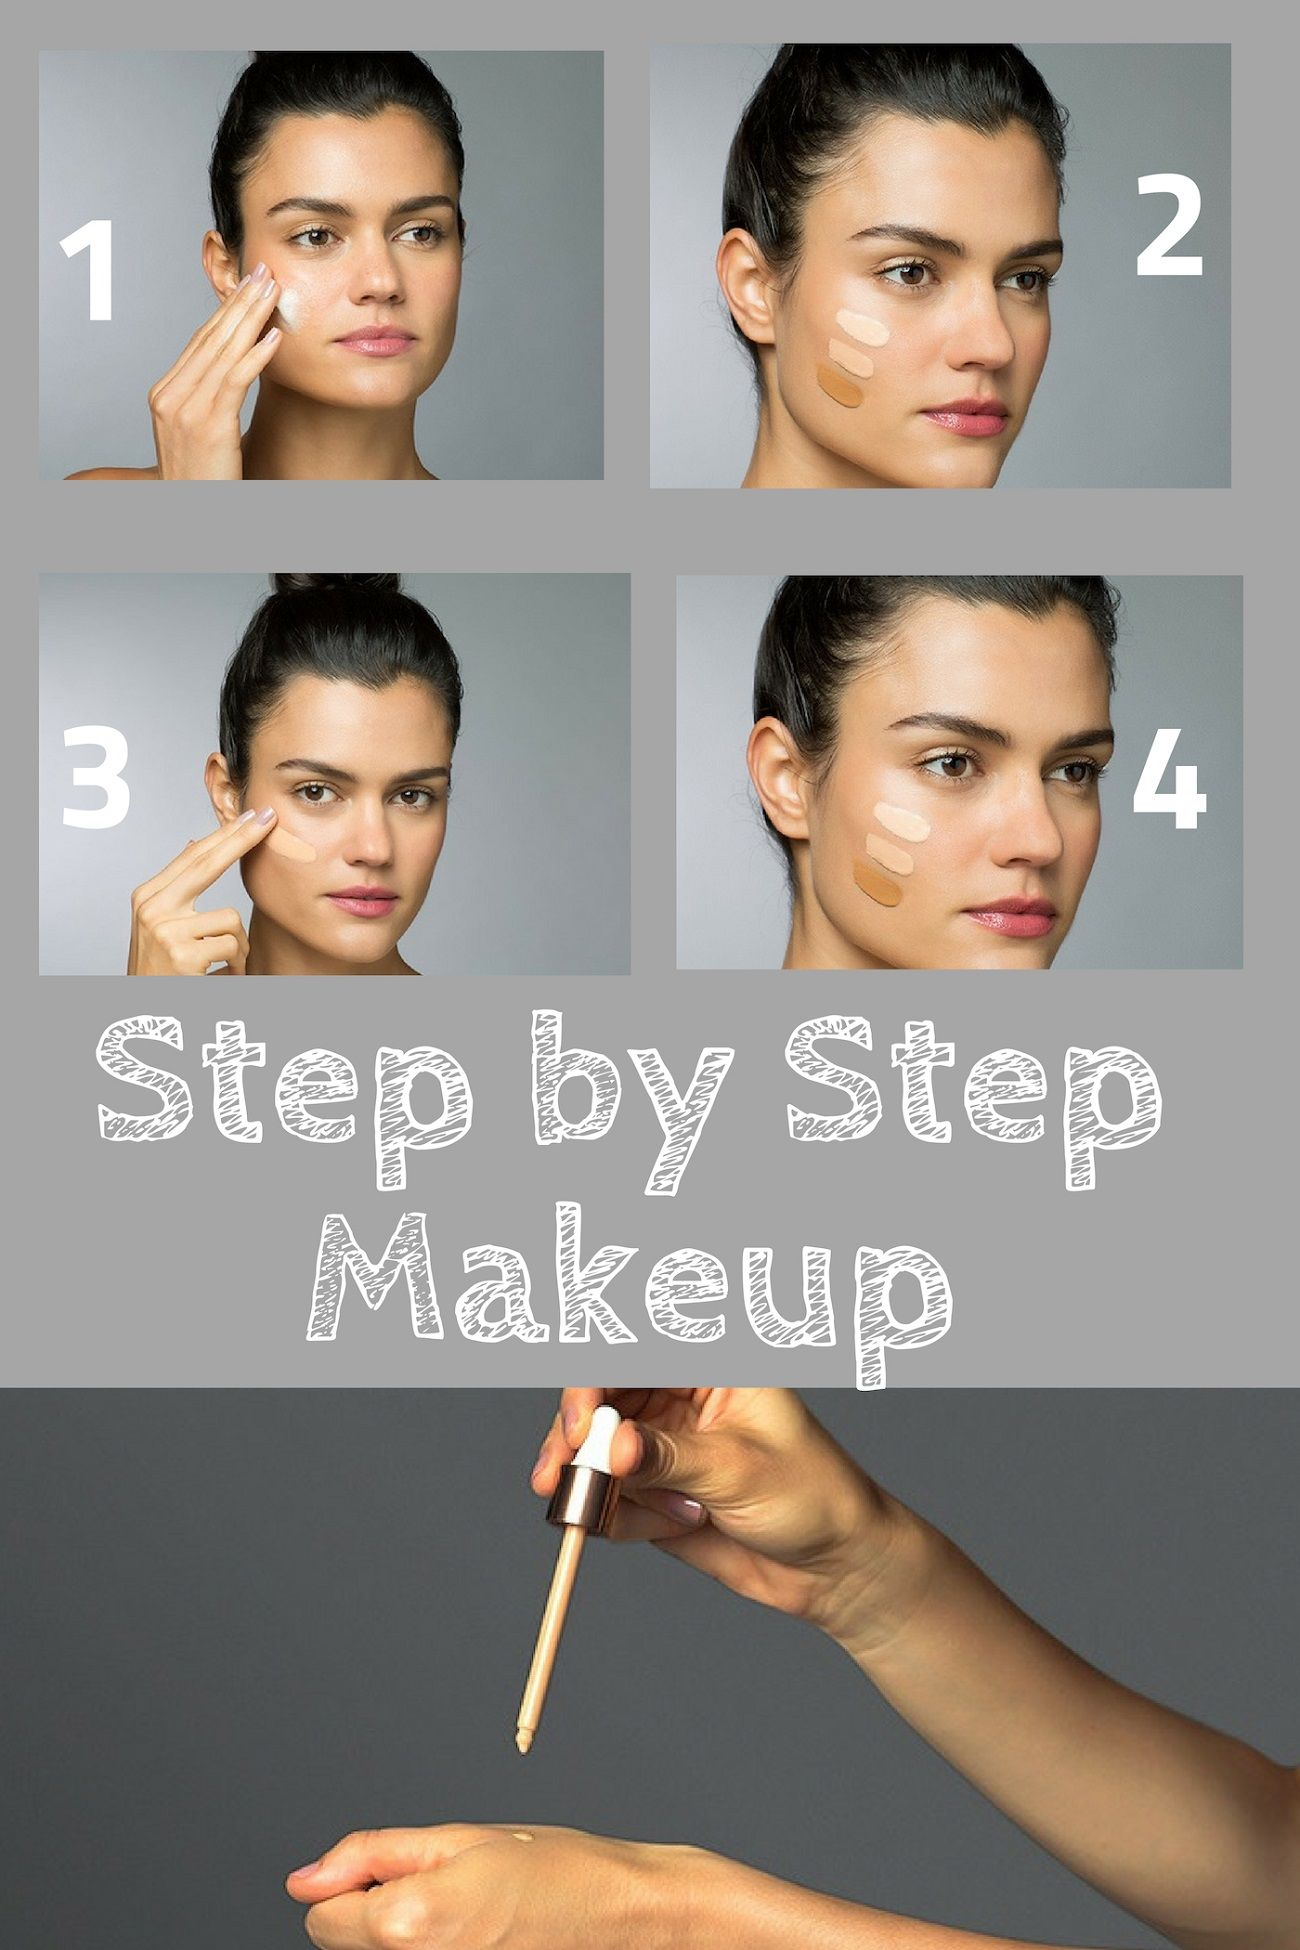 STEP BY STEP MAKEUP Tutorial FOR PERFECT SKIN (With